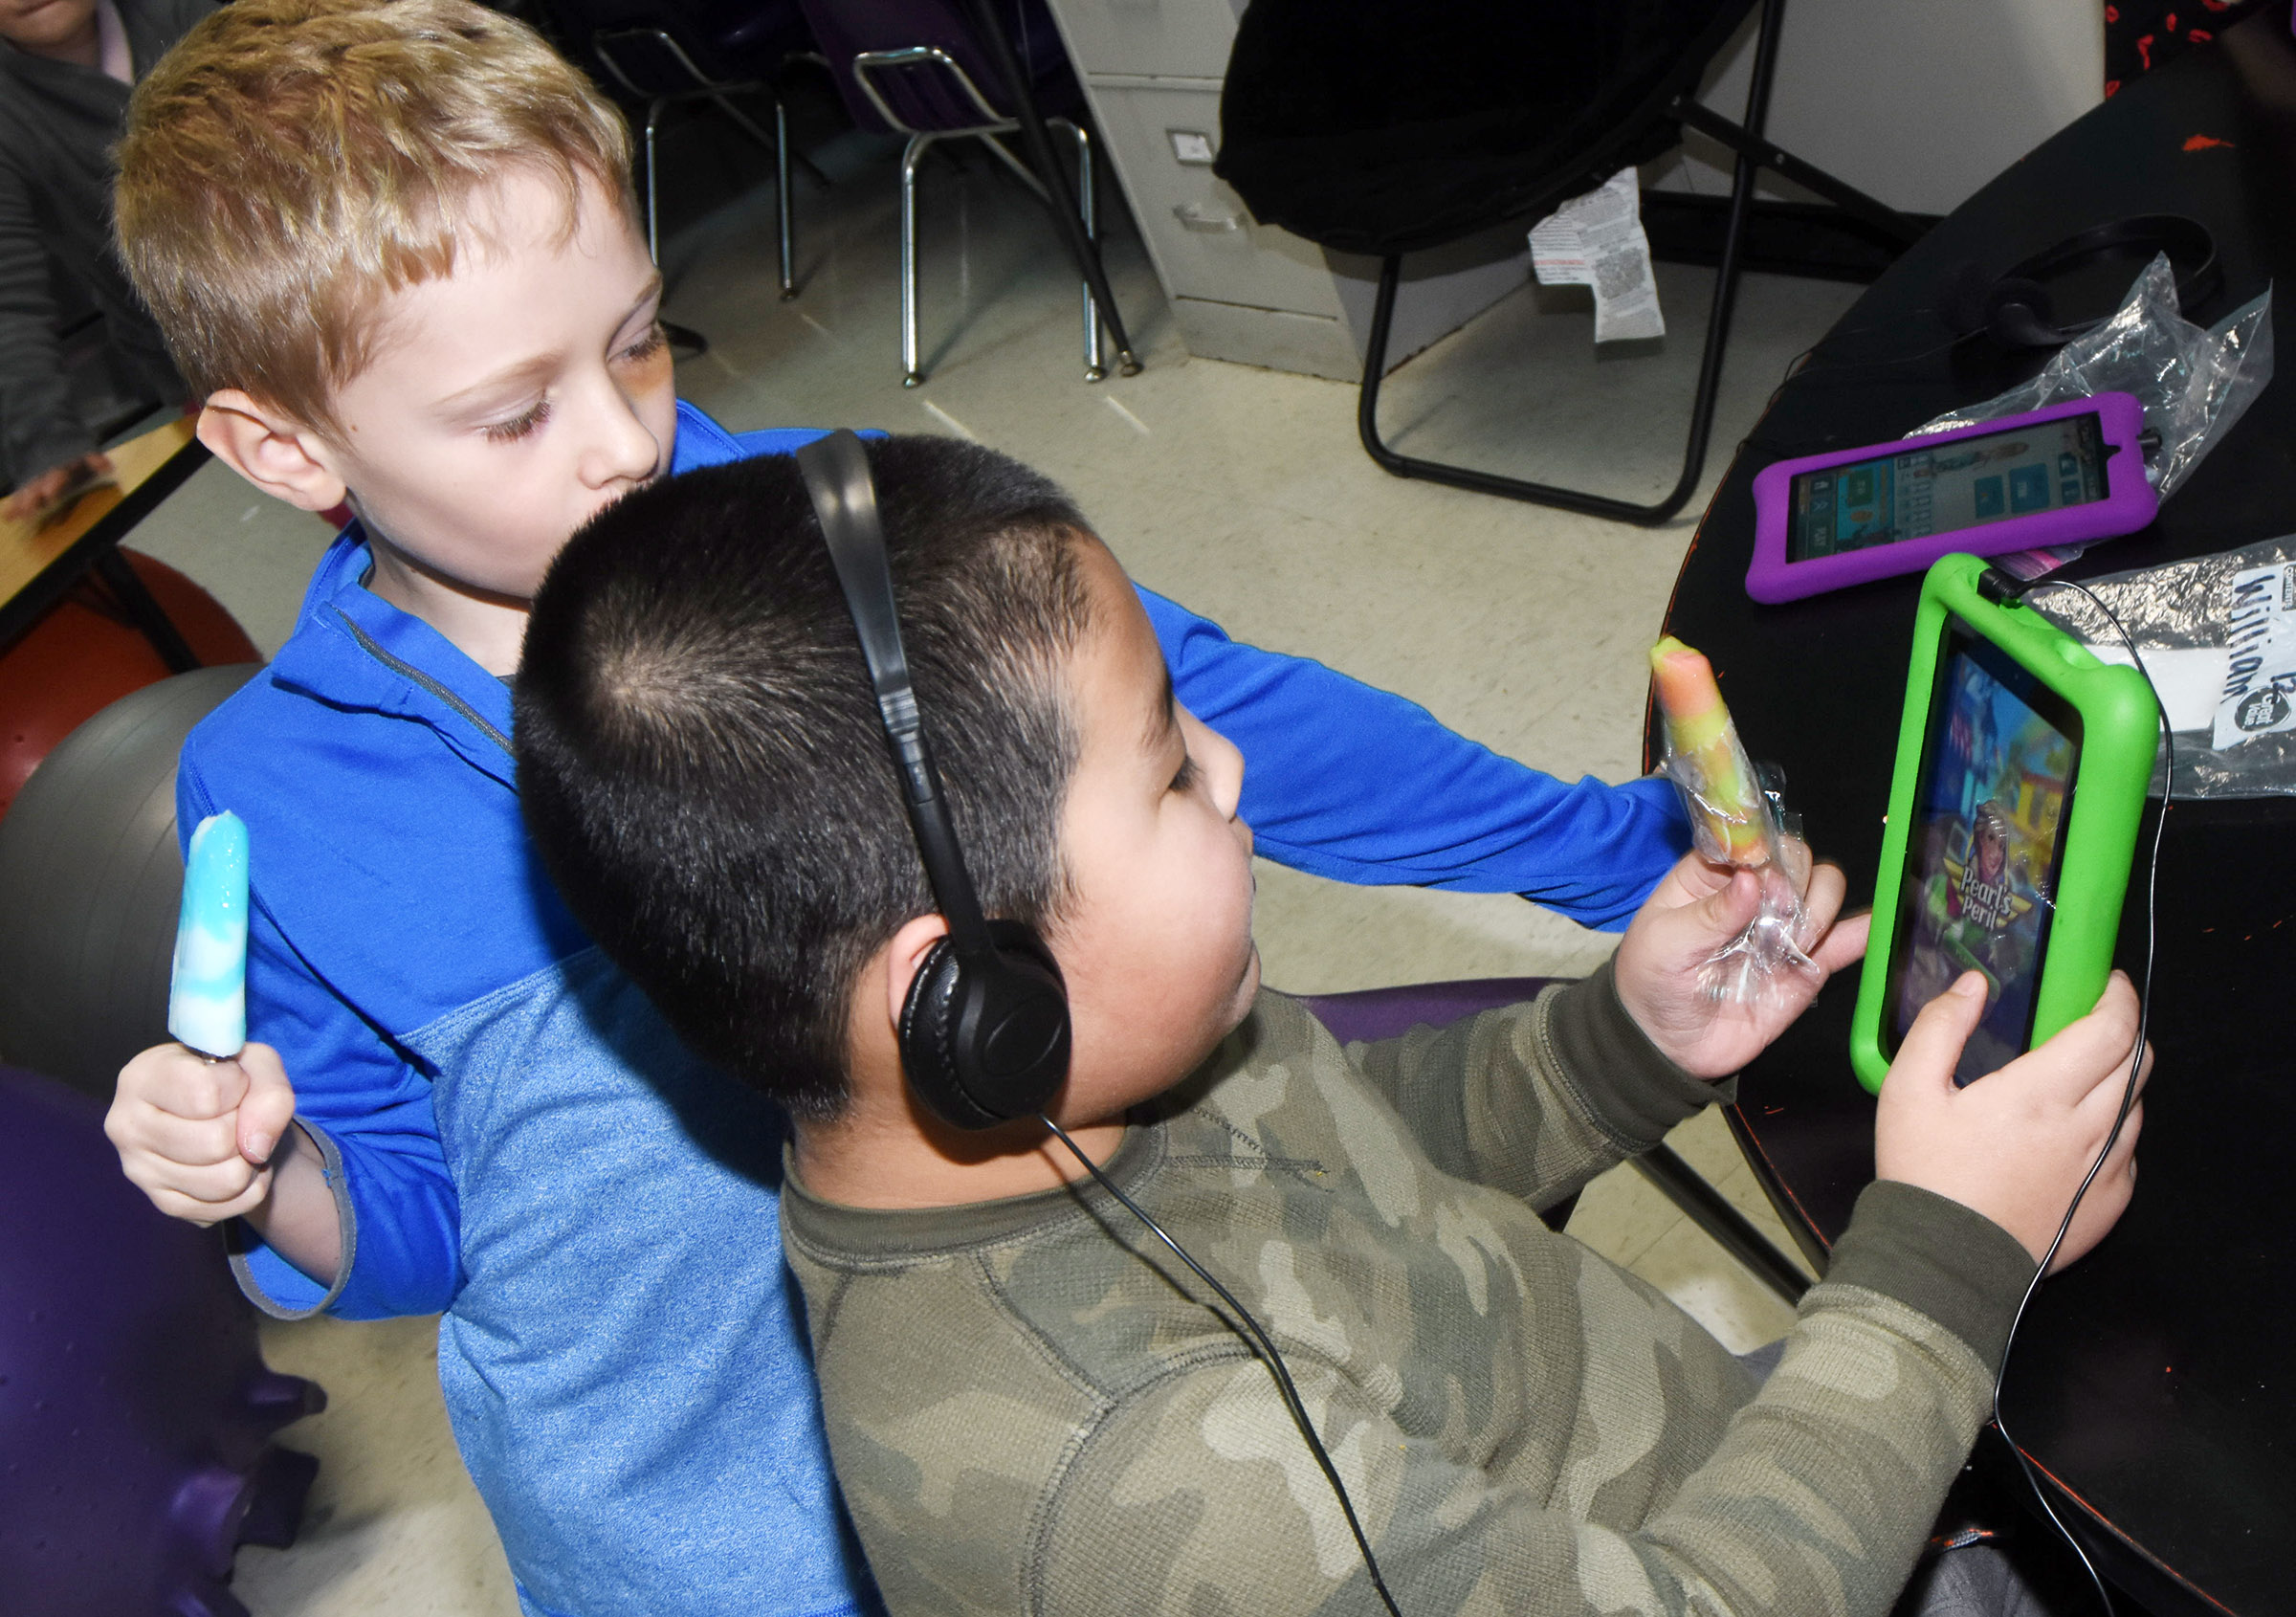 CES first-graders Jackson Wright, at left, and William Li enjoy popsicles as they play a game together on a tablet.